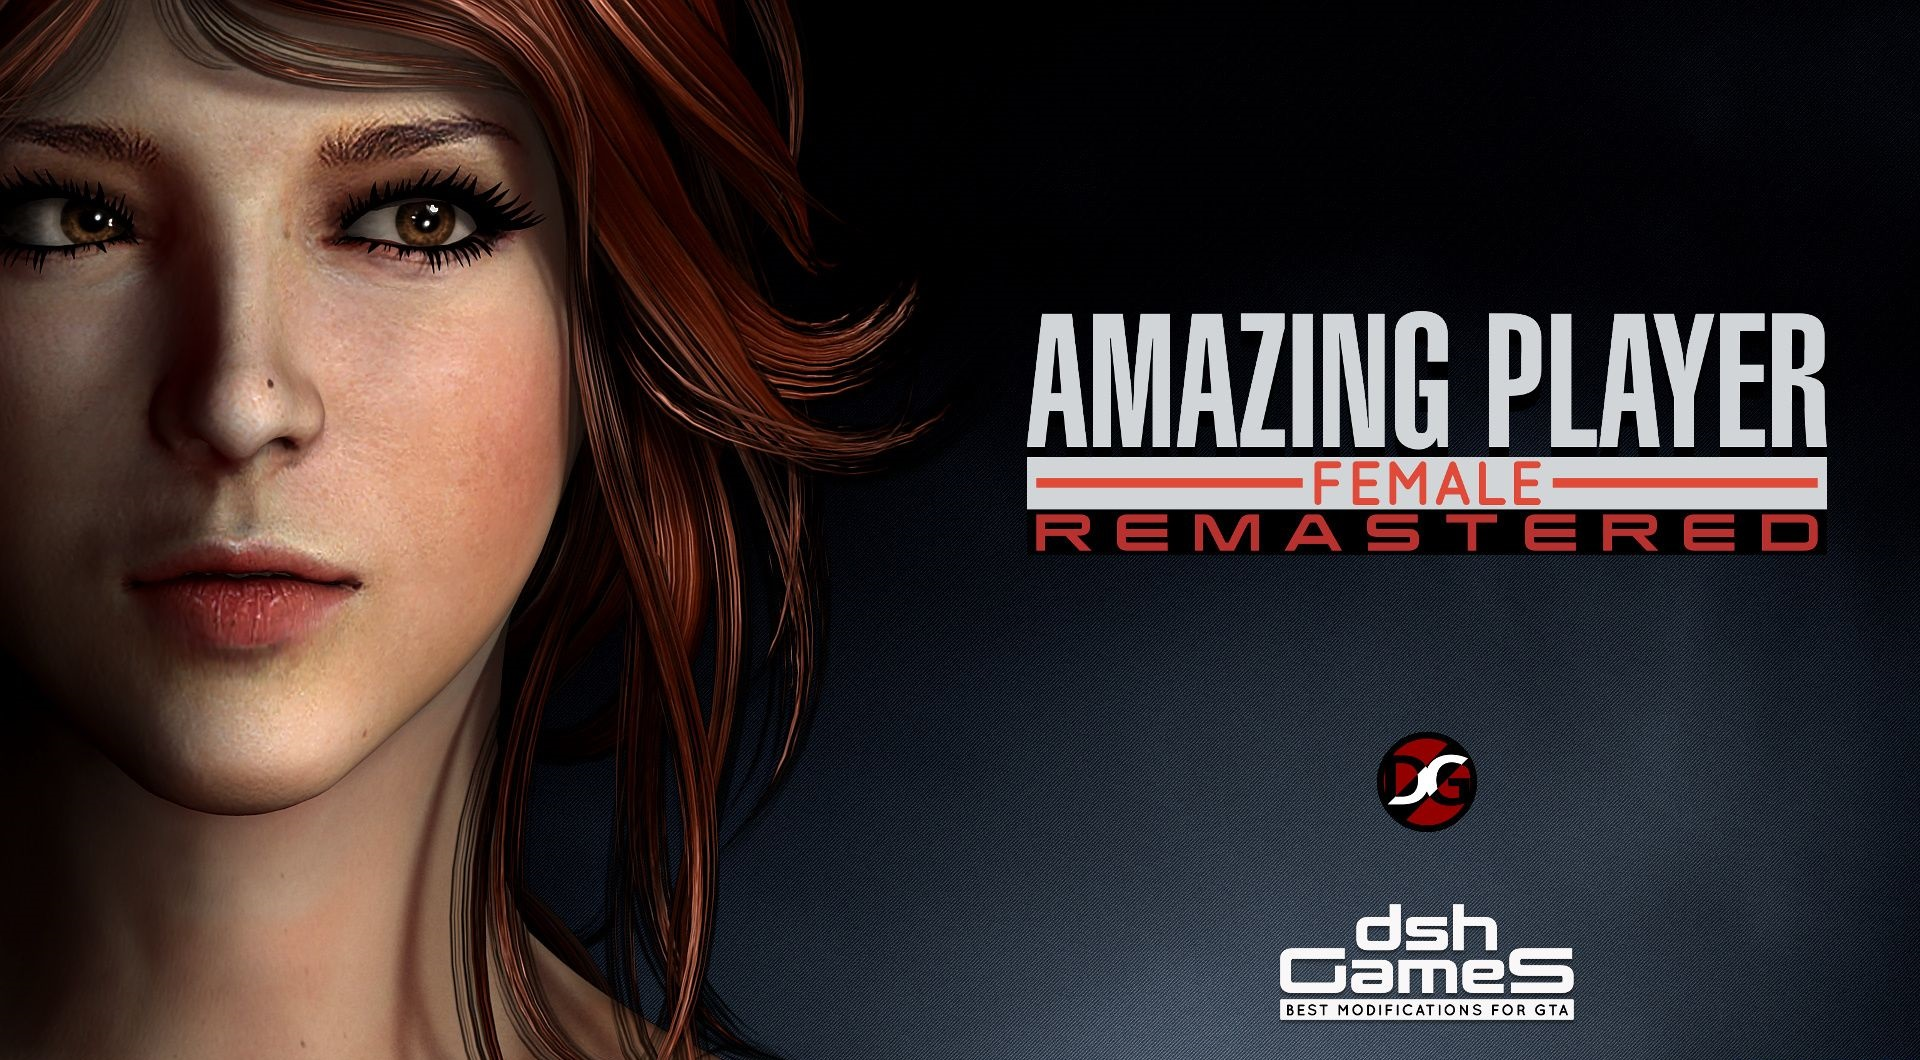 Amazing player: Female [REMASTERED]